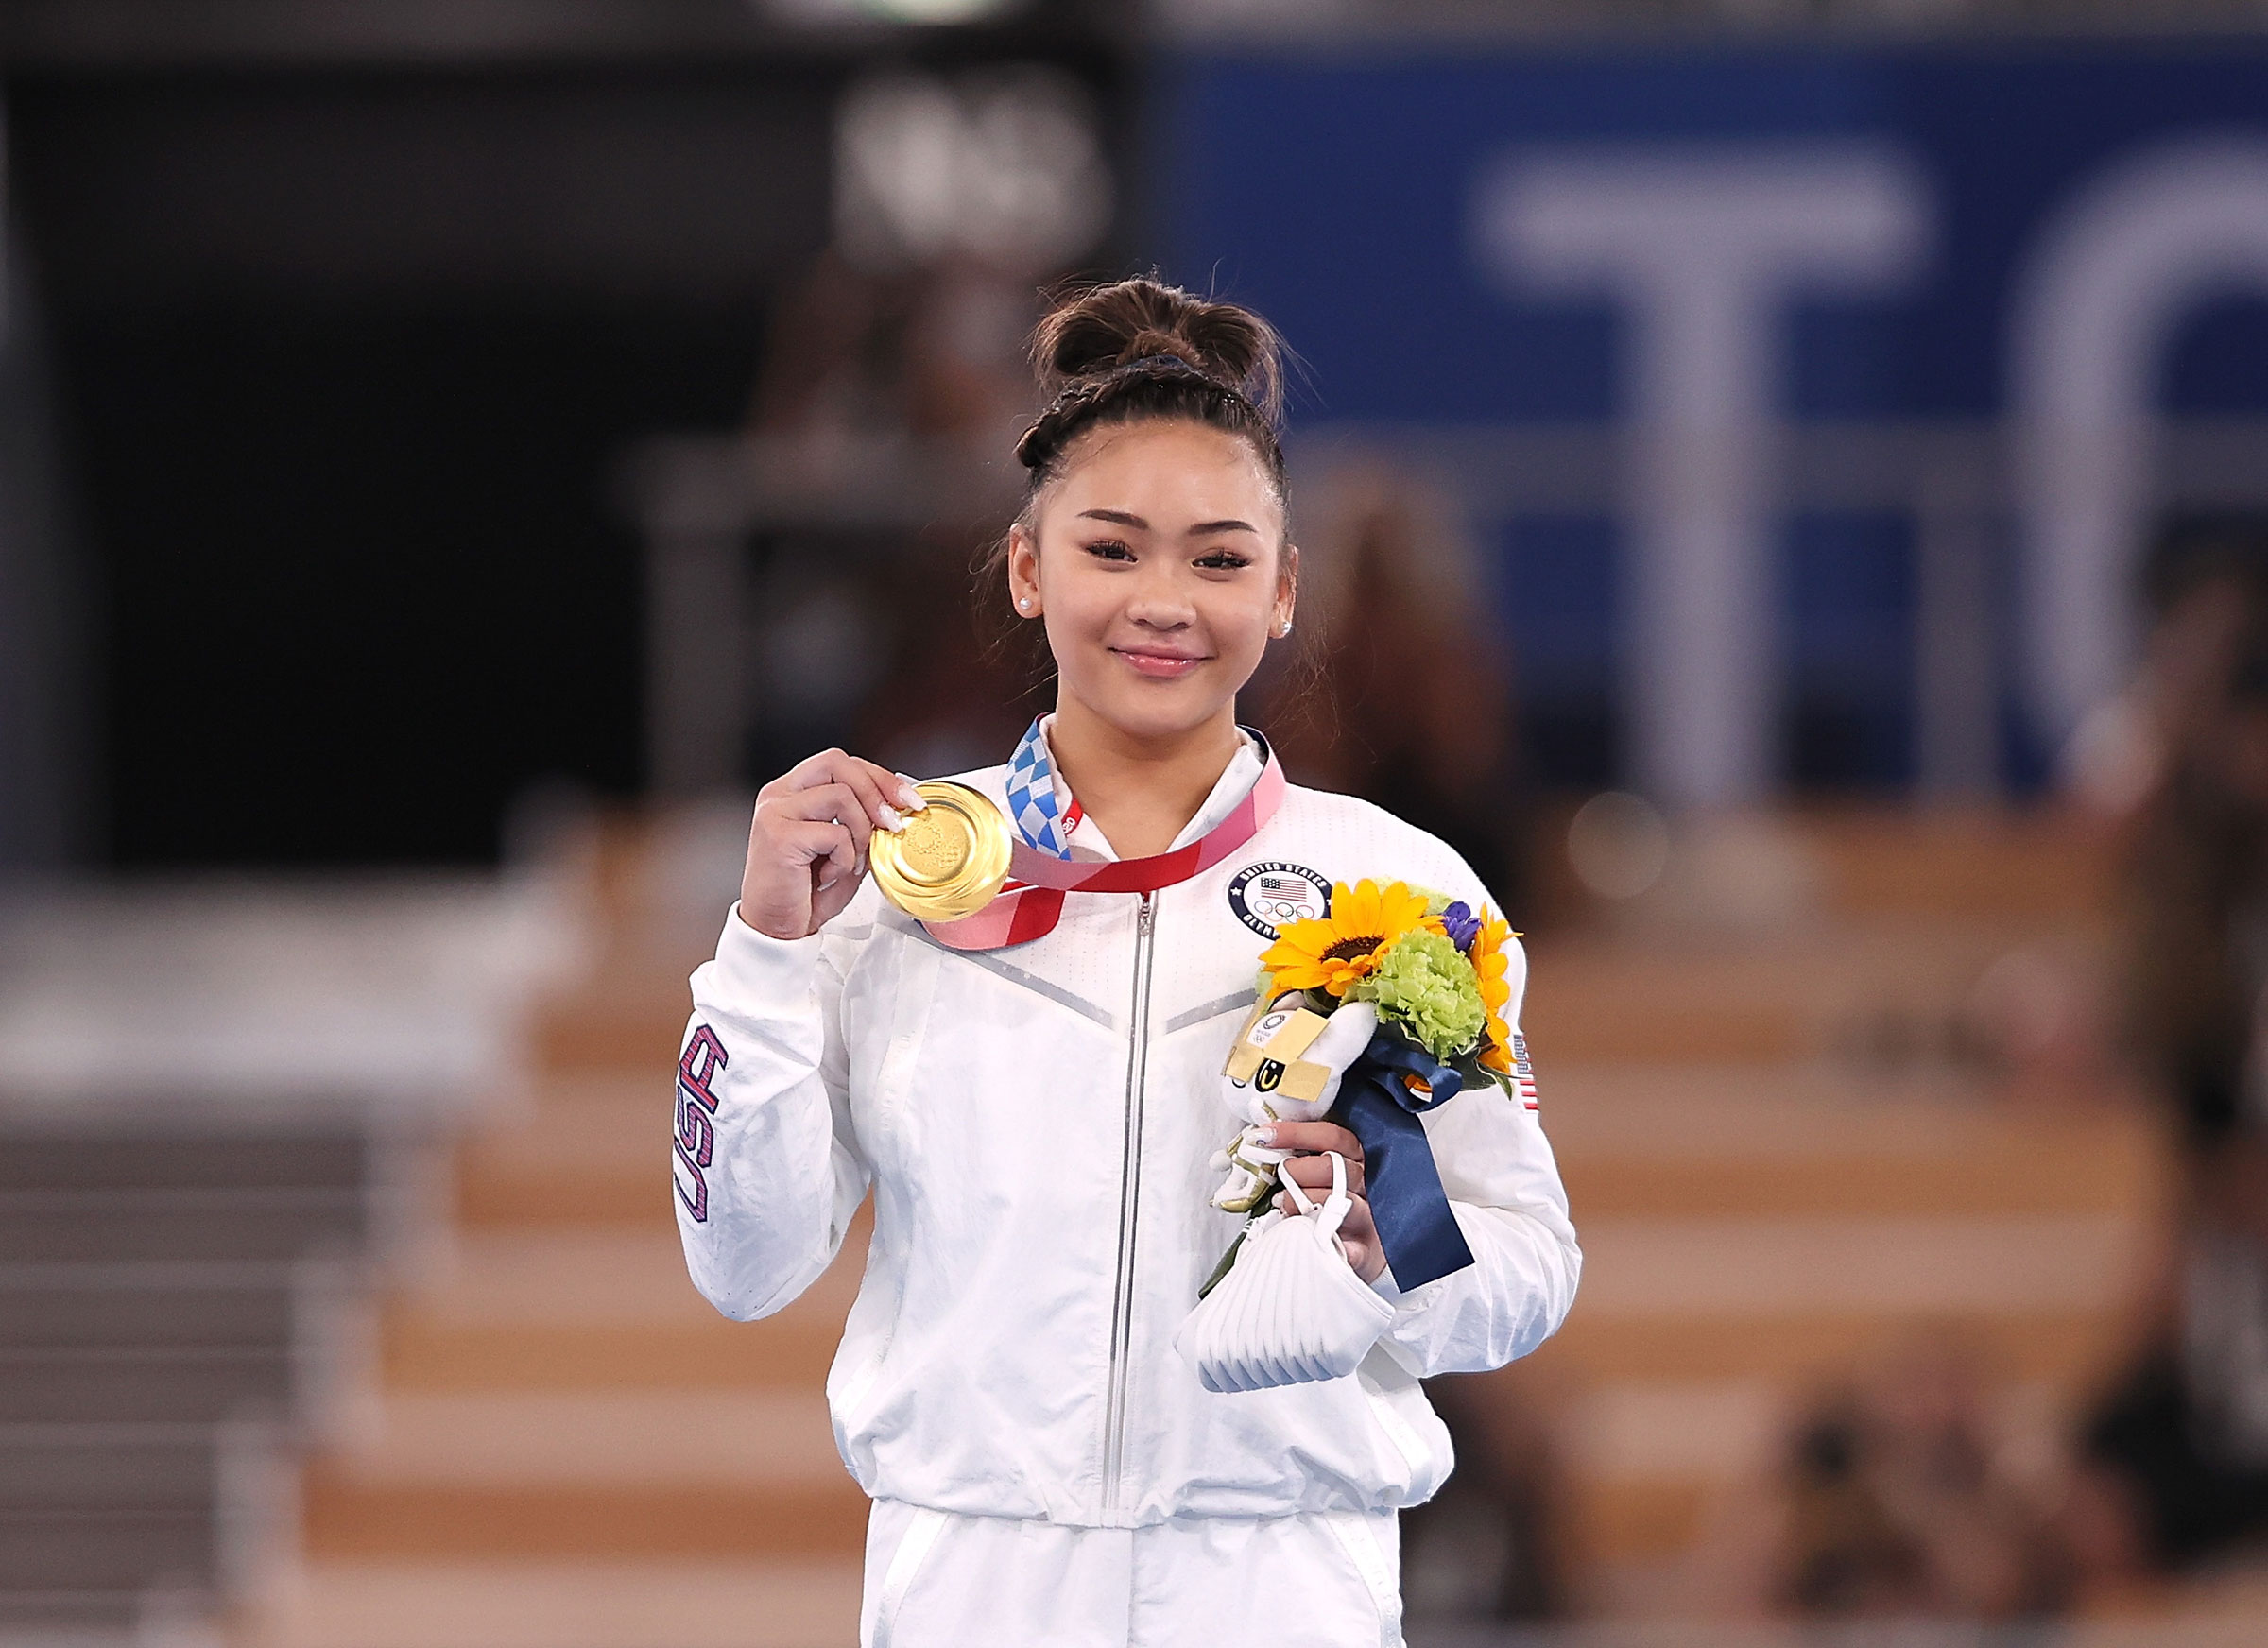 Sunisa Lee of the United States poses during the awards ceremony after the artistic gymnastics women's all-around final in Tokyo, Japan, July 29, 2021.